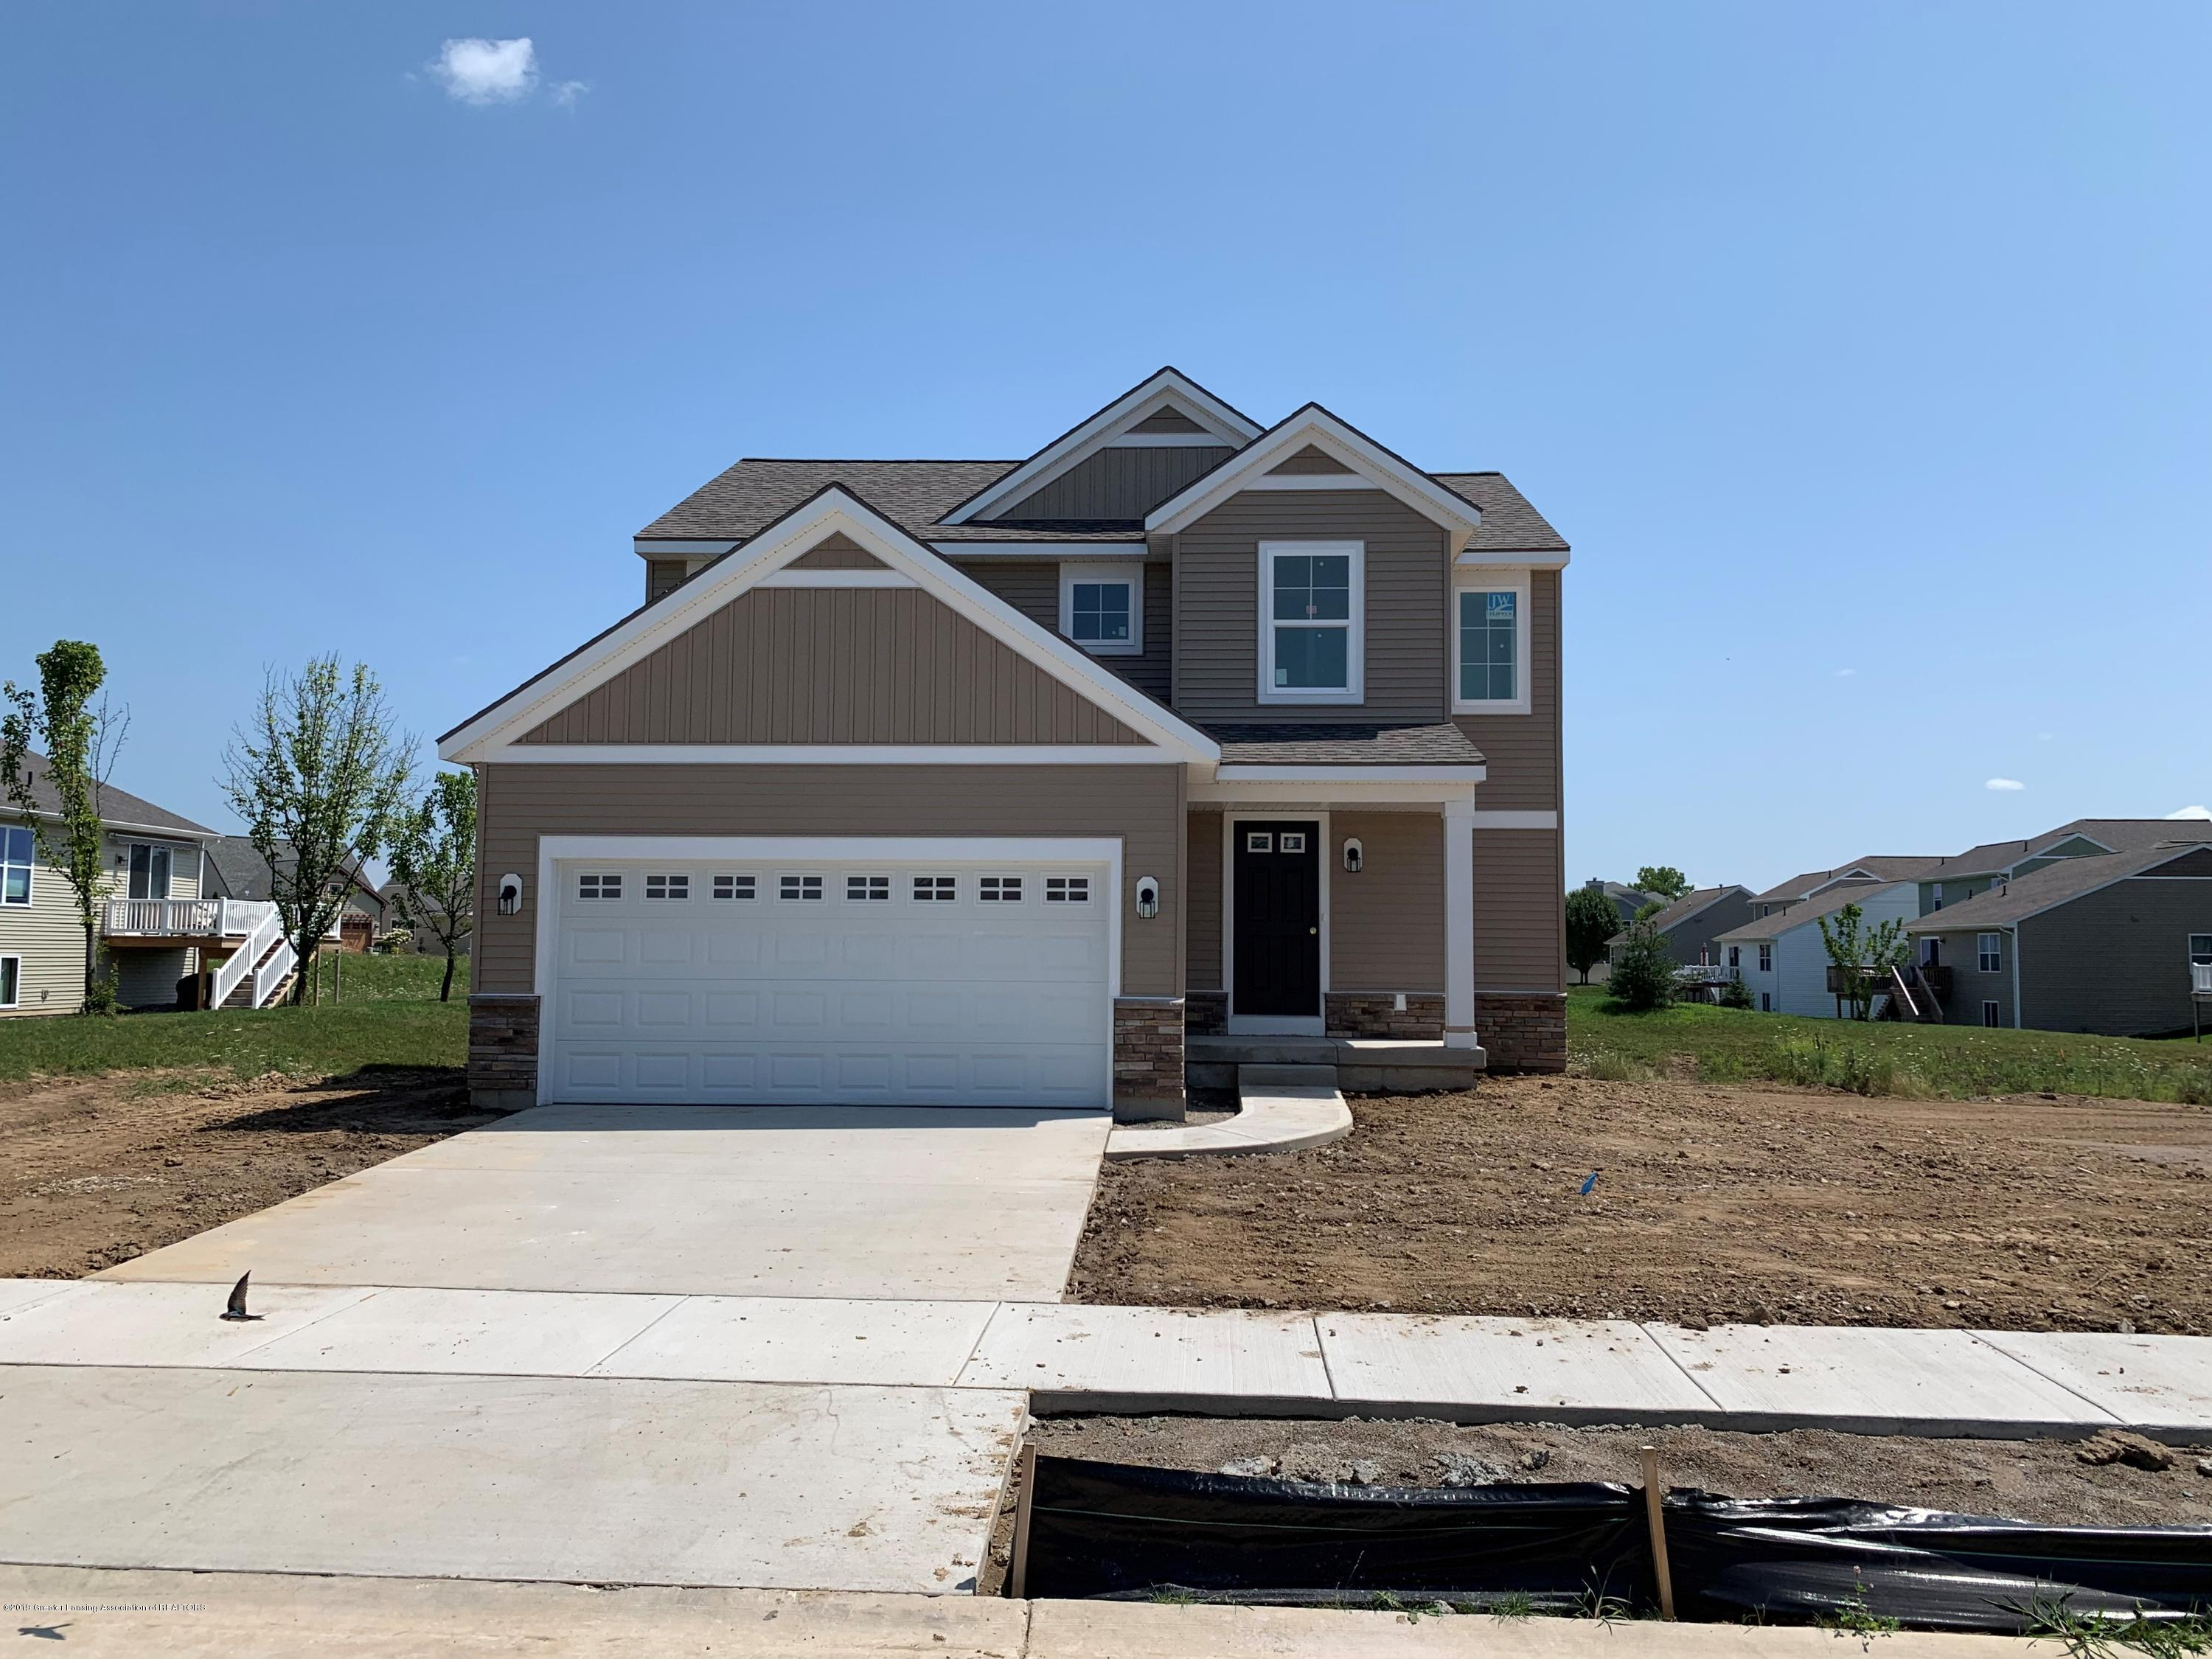 11736 Hickory Dr - Street View - 1